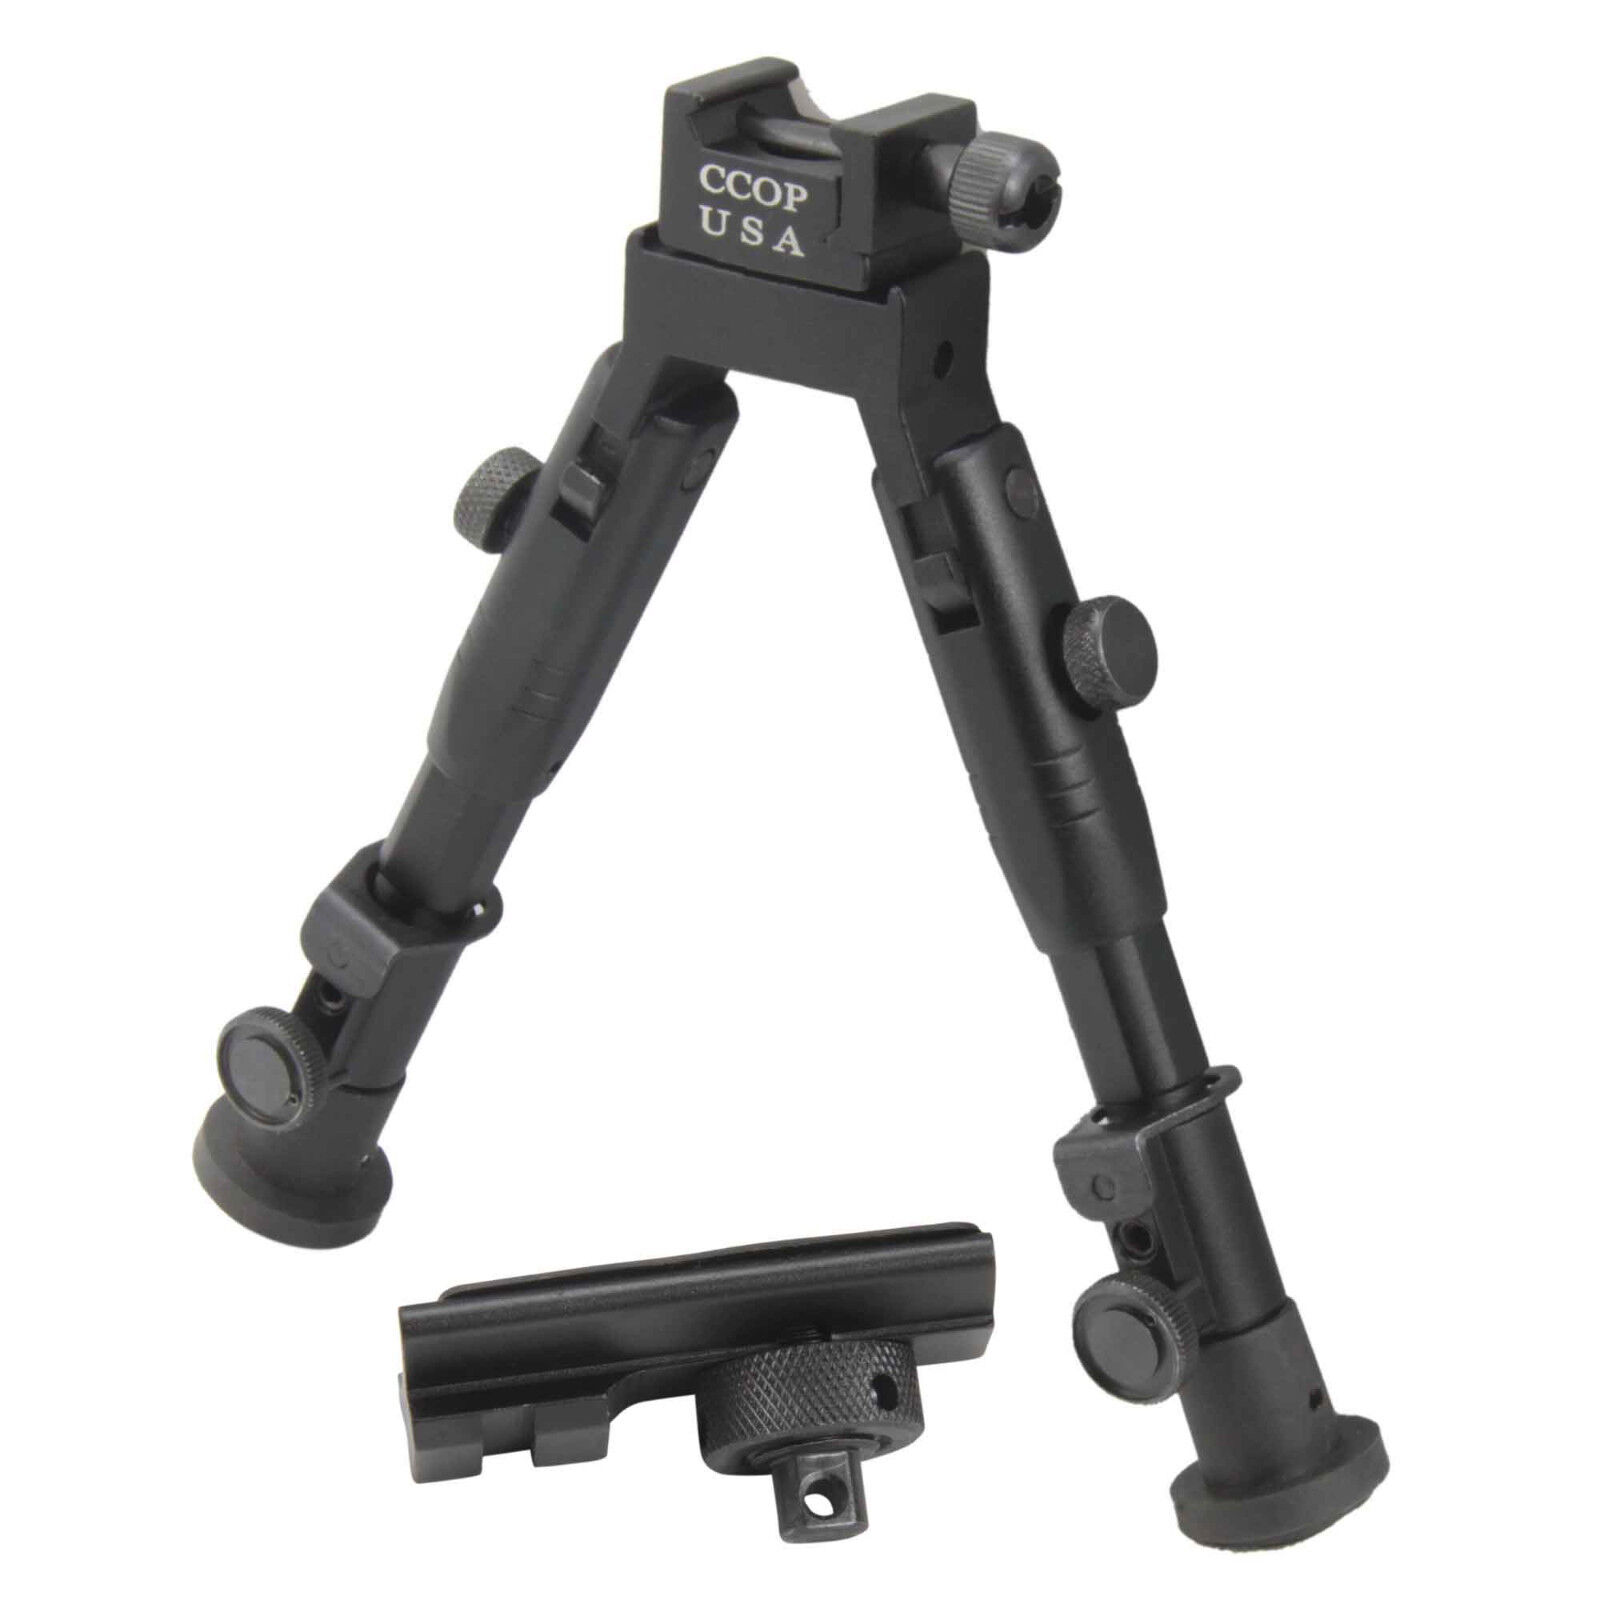 "CCOP USA 6"" Tactical Hunting Picatinny Swivel Stud Mount Min"